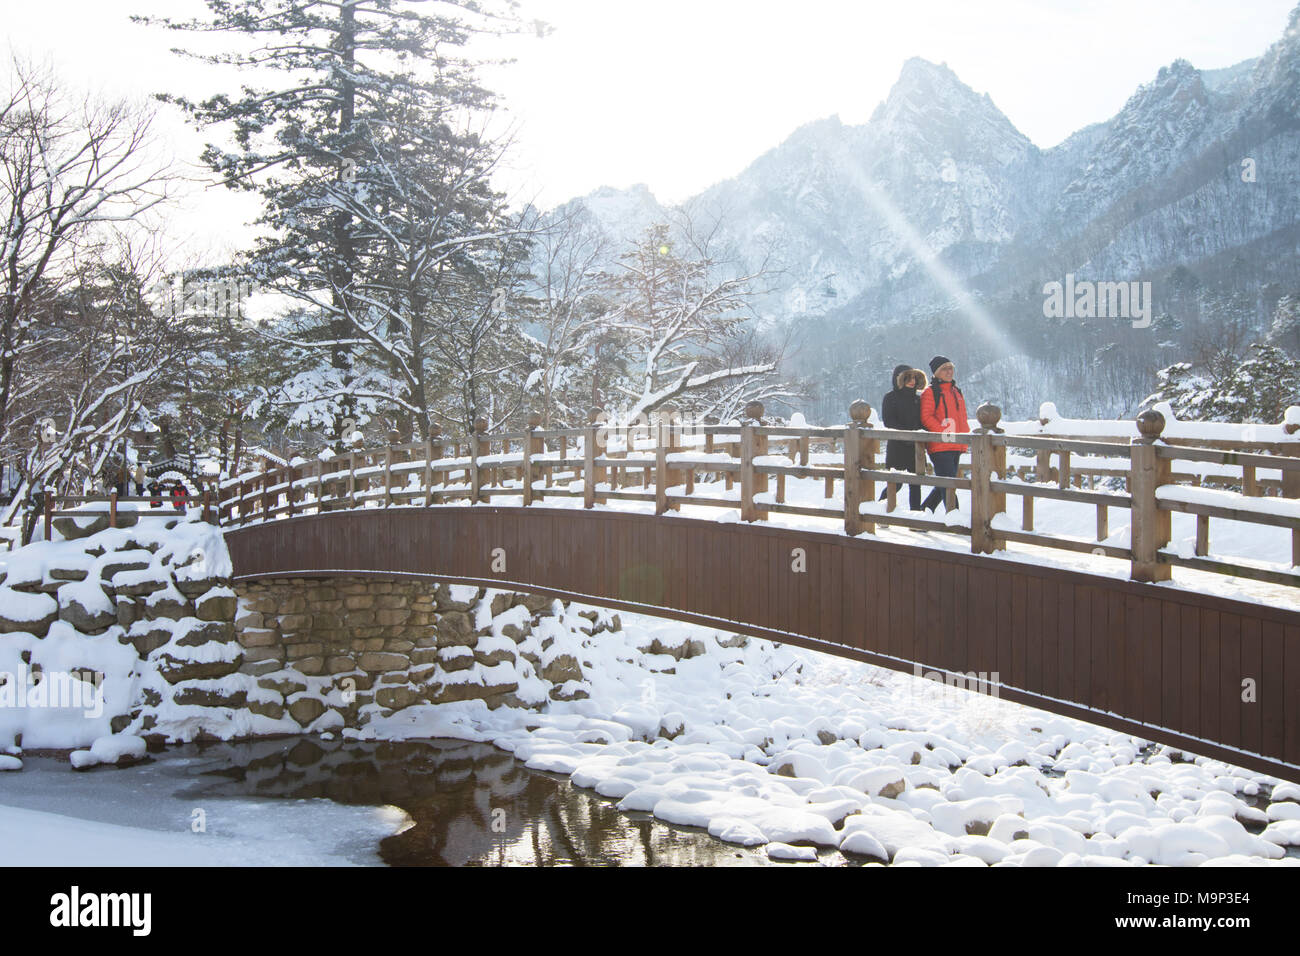 A man and woman are walking over a wooden bridge in Seoraksan National Park, Gangwon-do, South Korea.  Seoraksan is a beautiful and iconic National Park in the mountains near Sokcho in the Gangwon-do region of South Korea. The name refers to Snowy Crags Mountains. Set against the landscape are two Buddhist temples: Sinheung-sa and Beakdam-sa. This region is hosting the winter Olympics in February 2018. - Stock Image